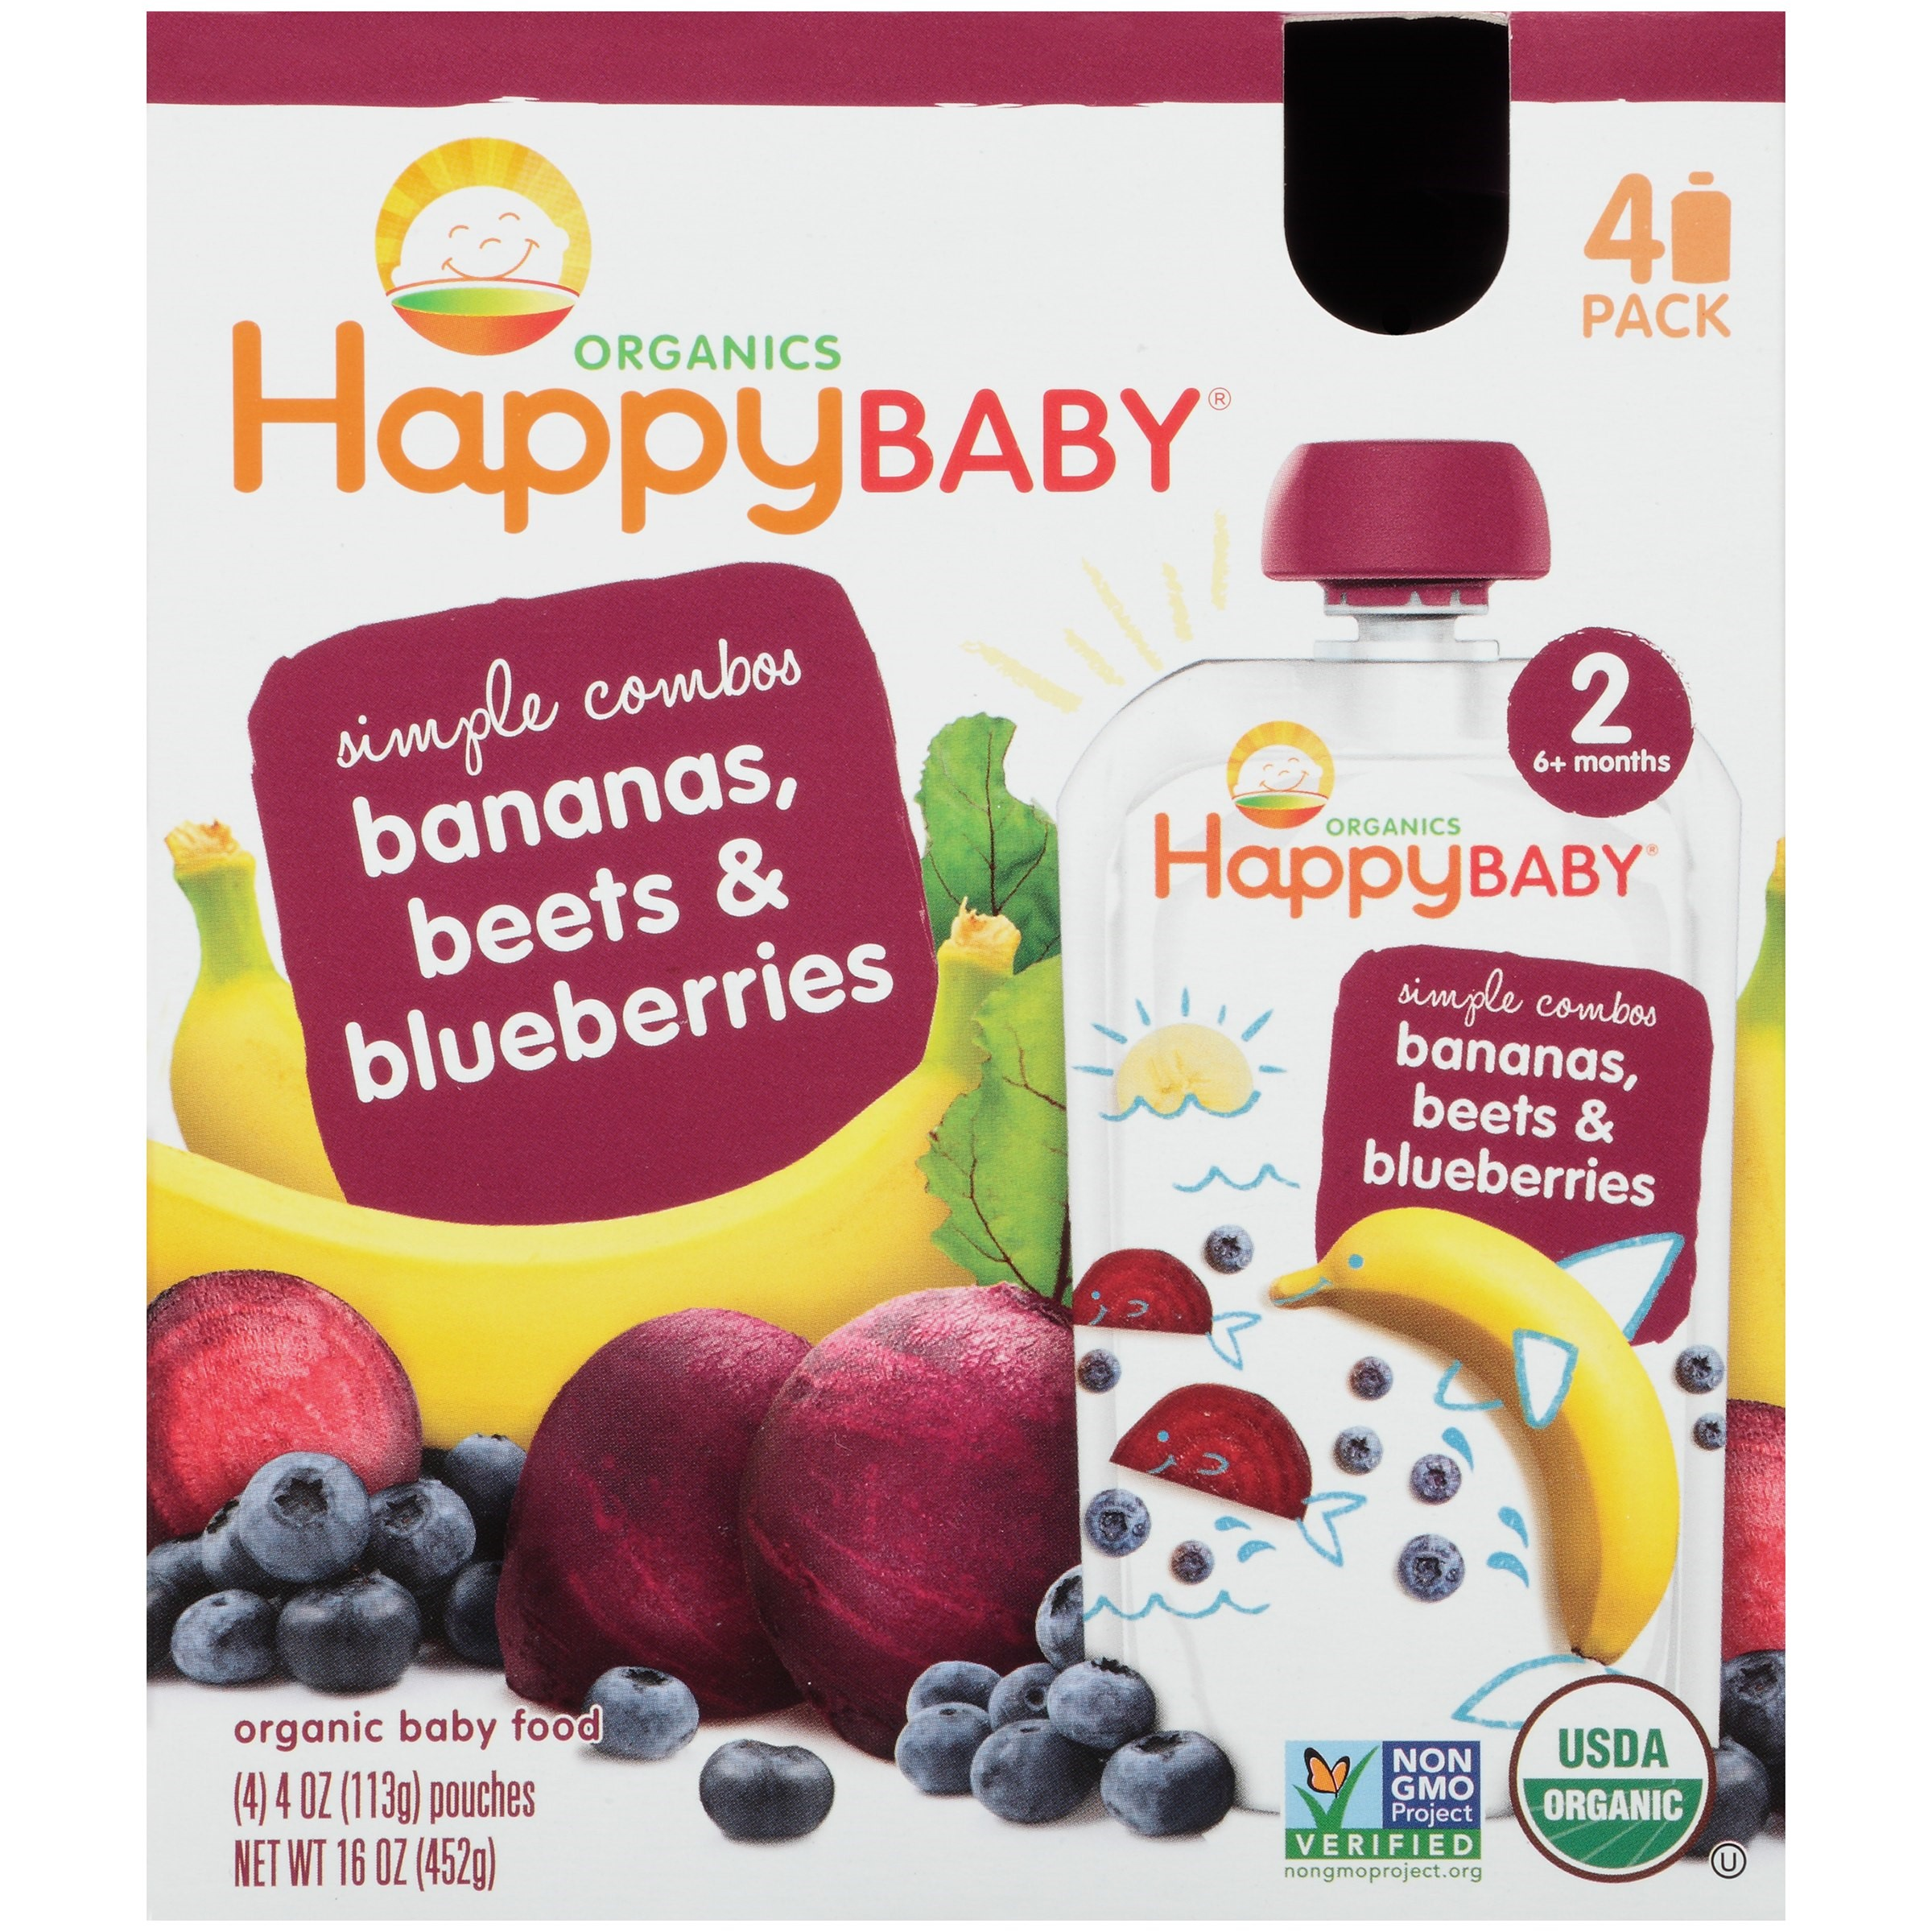 Happy Baby Food - Organic - Simple Combos - Bananas Beets and Blueberries - 6 Plus Months - Stage 2 - 3.5 oz - 4 Pack